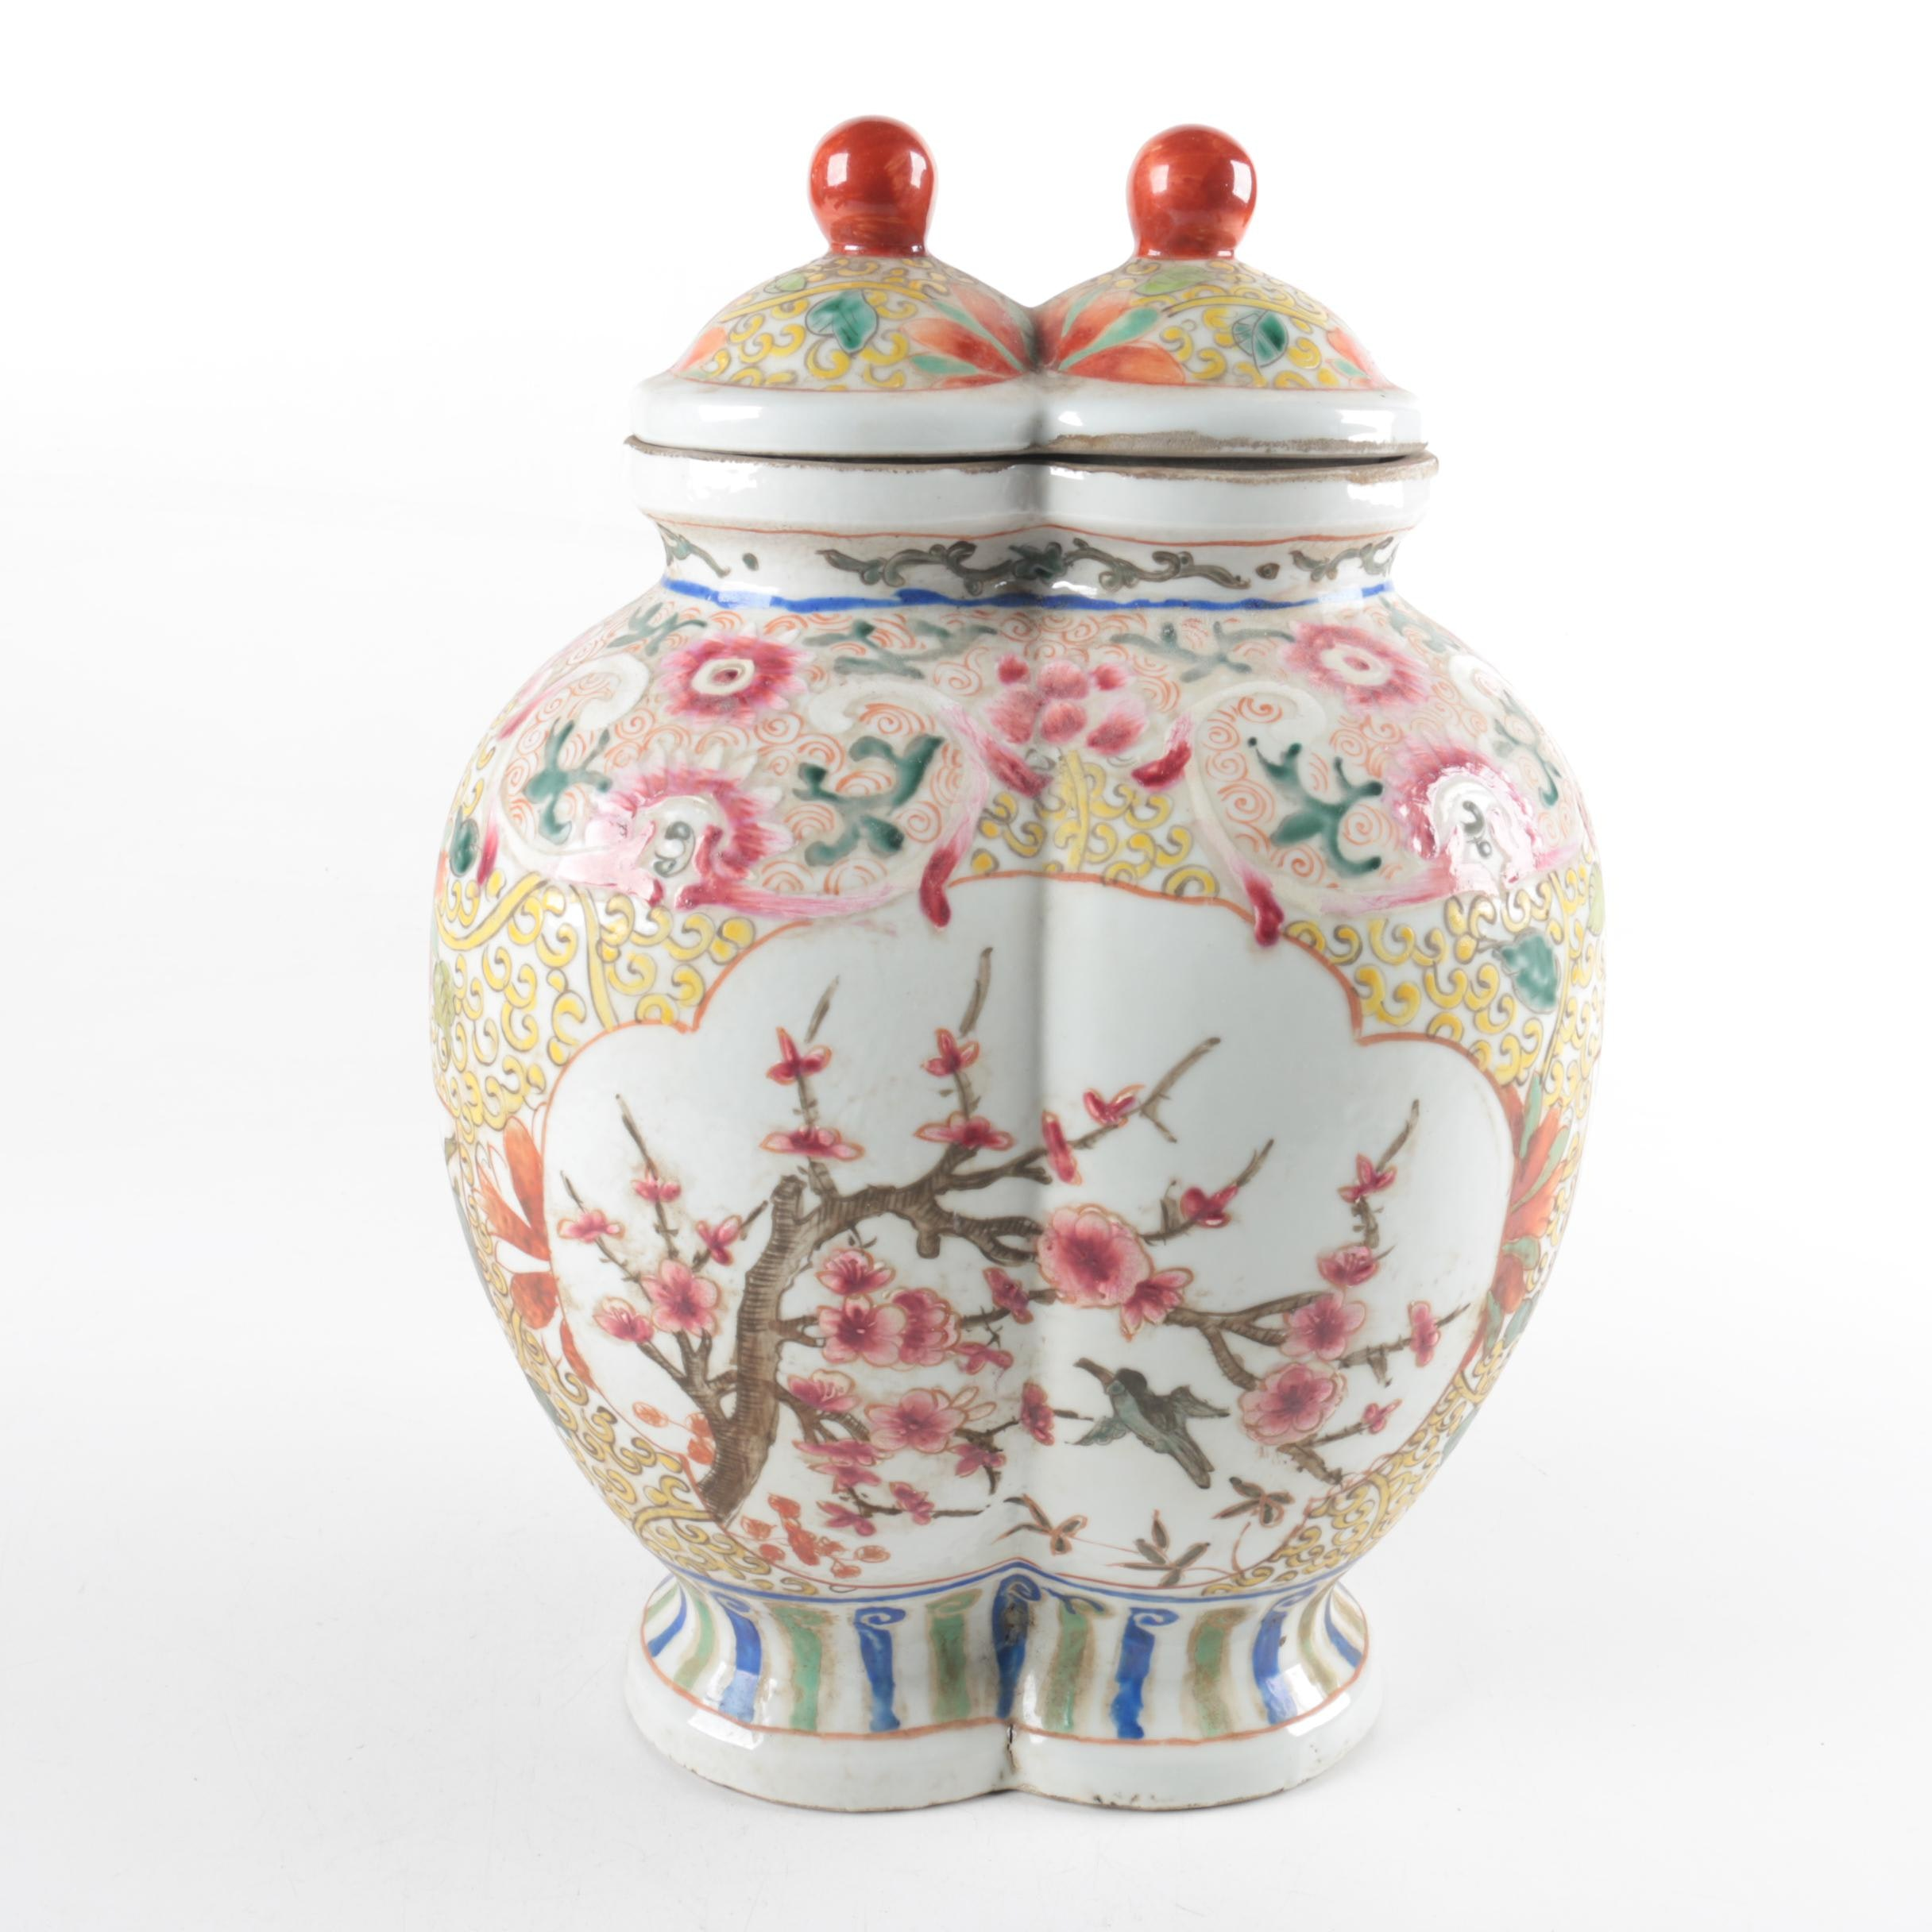 Chinoiserie Conjoined Urn from China